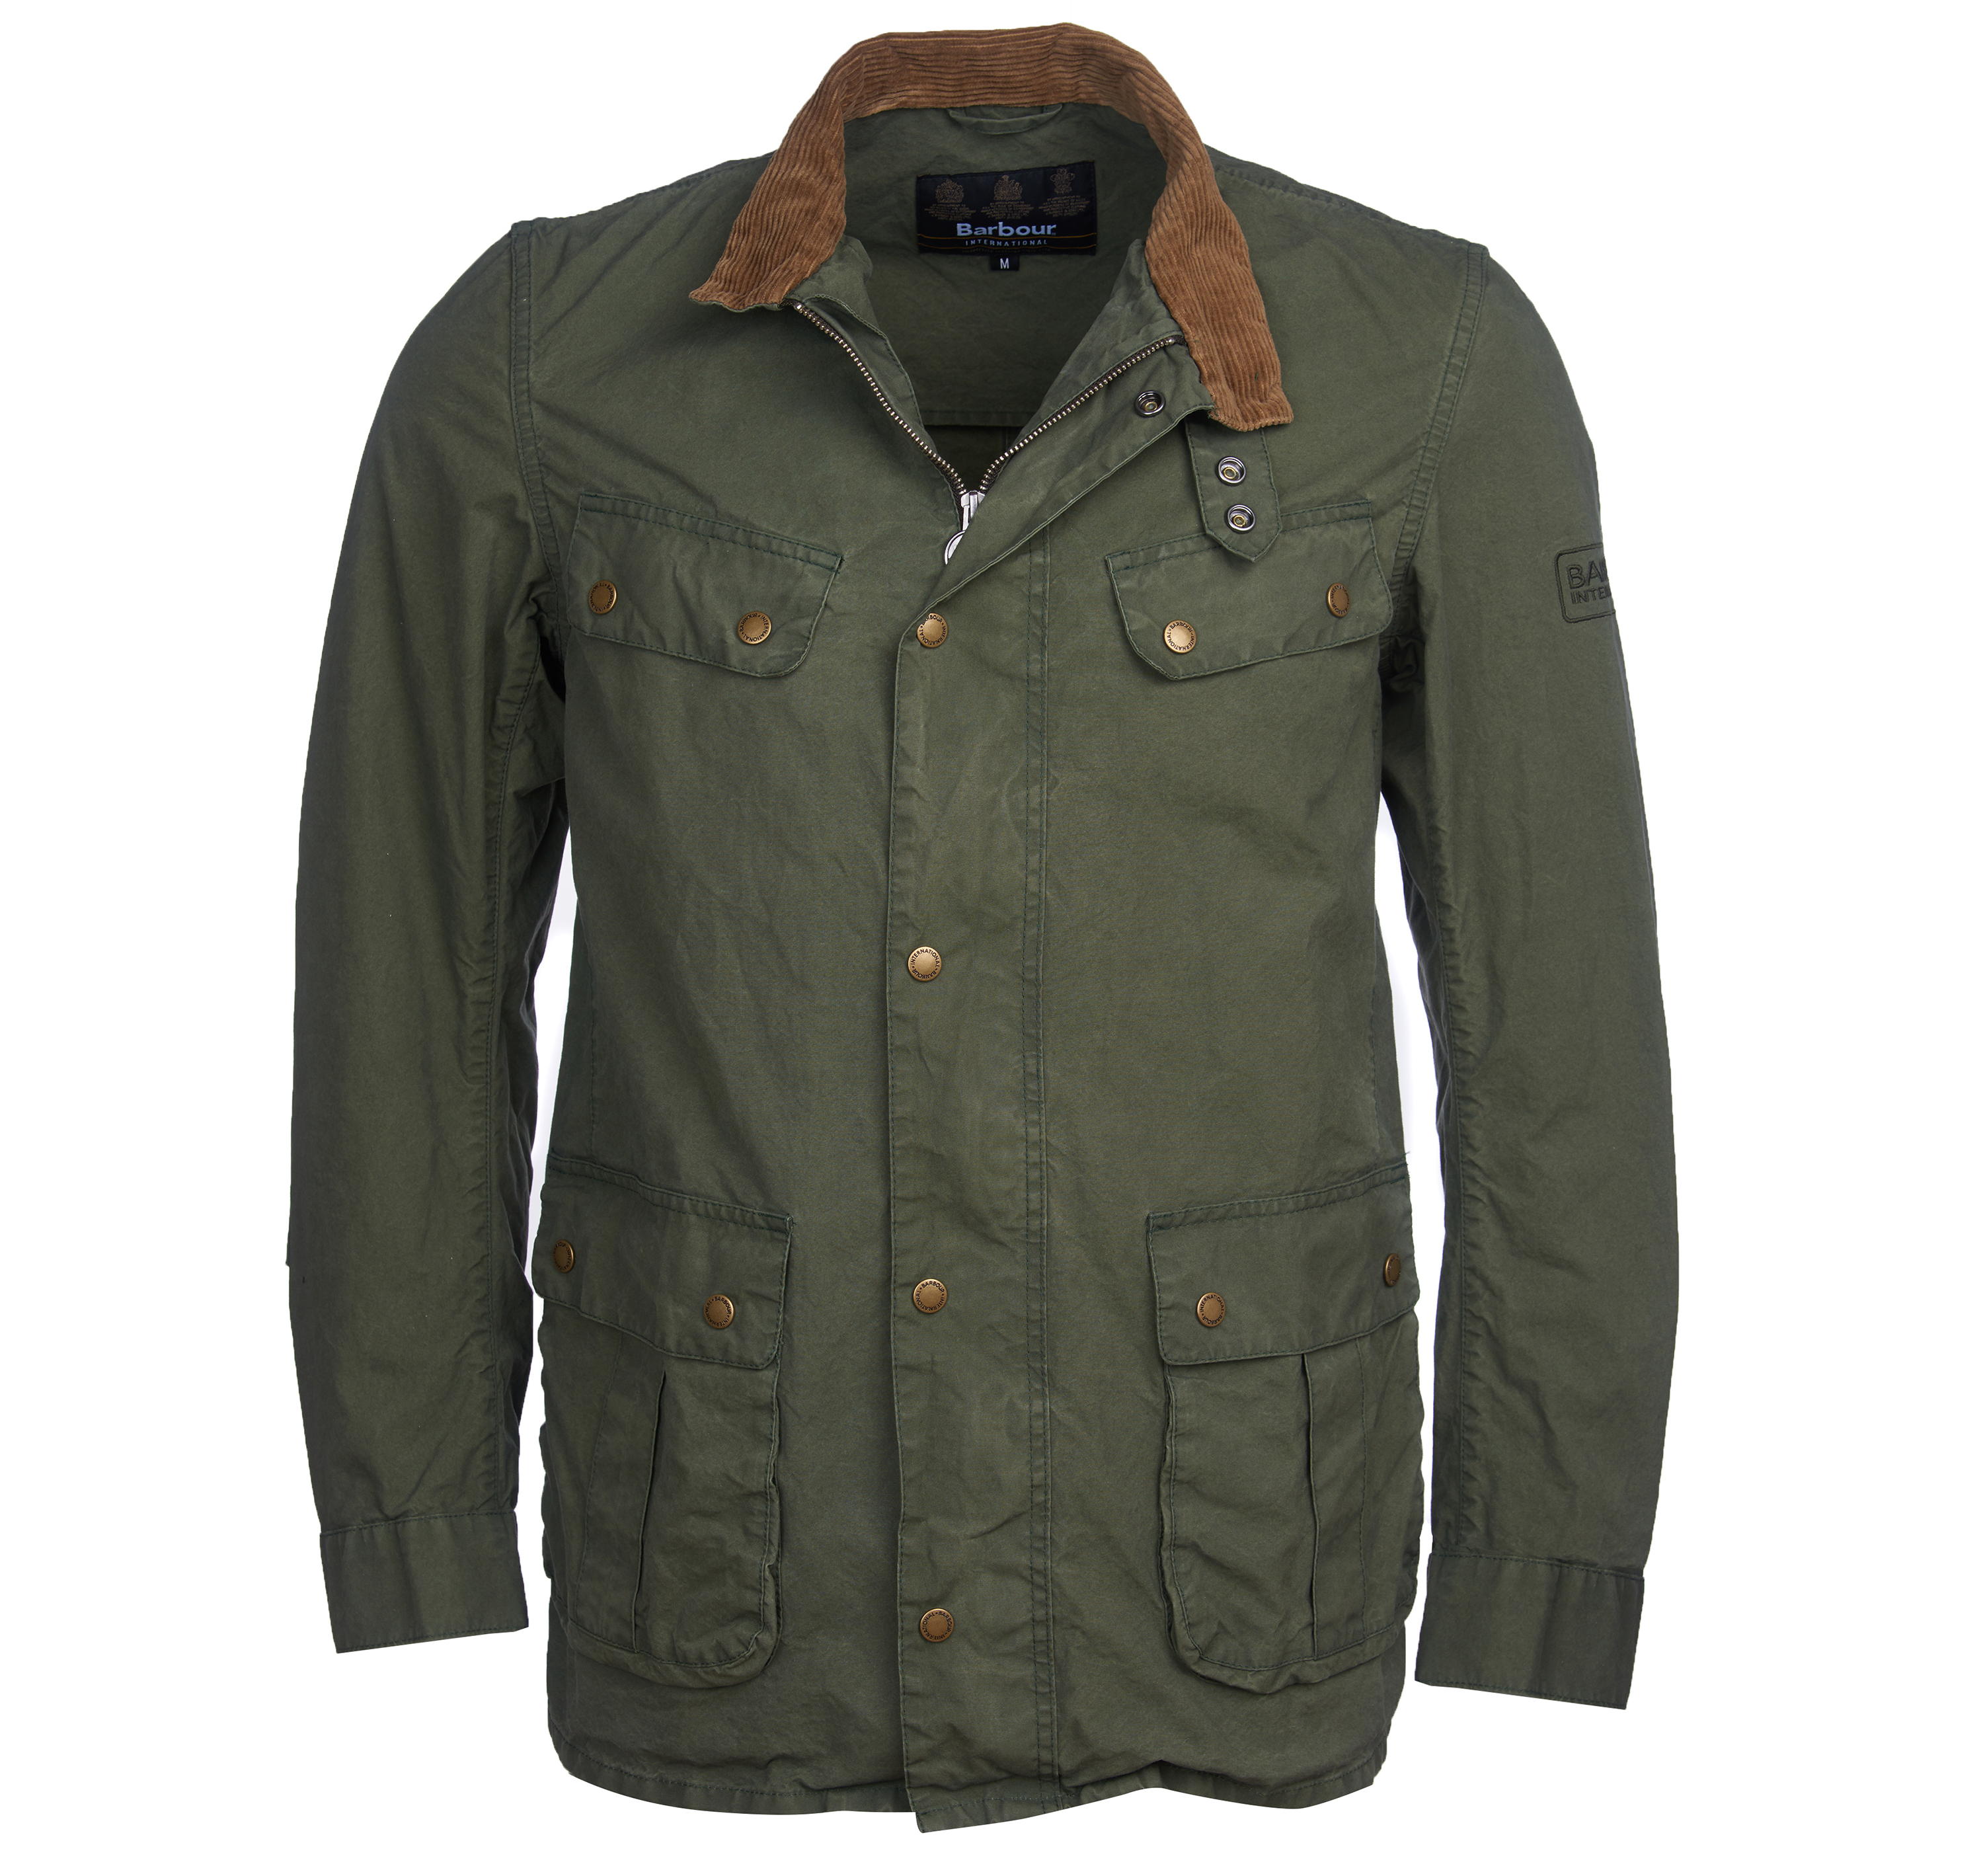 Barbour B. Intl. Coloured Duke Casual Jacket Green Tailored Fit